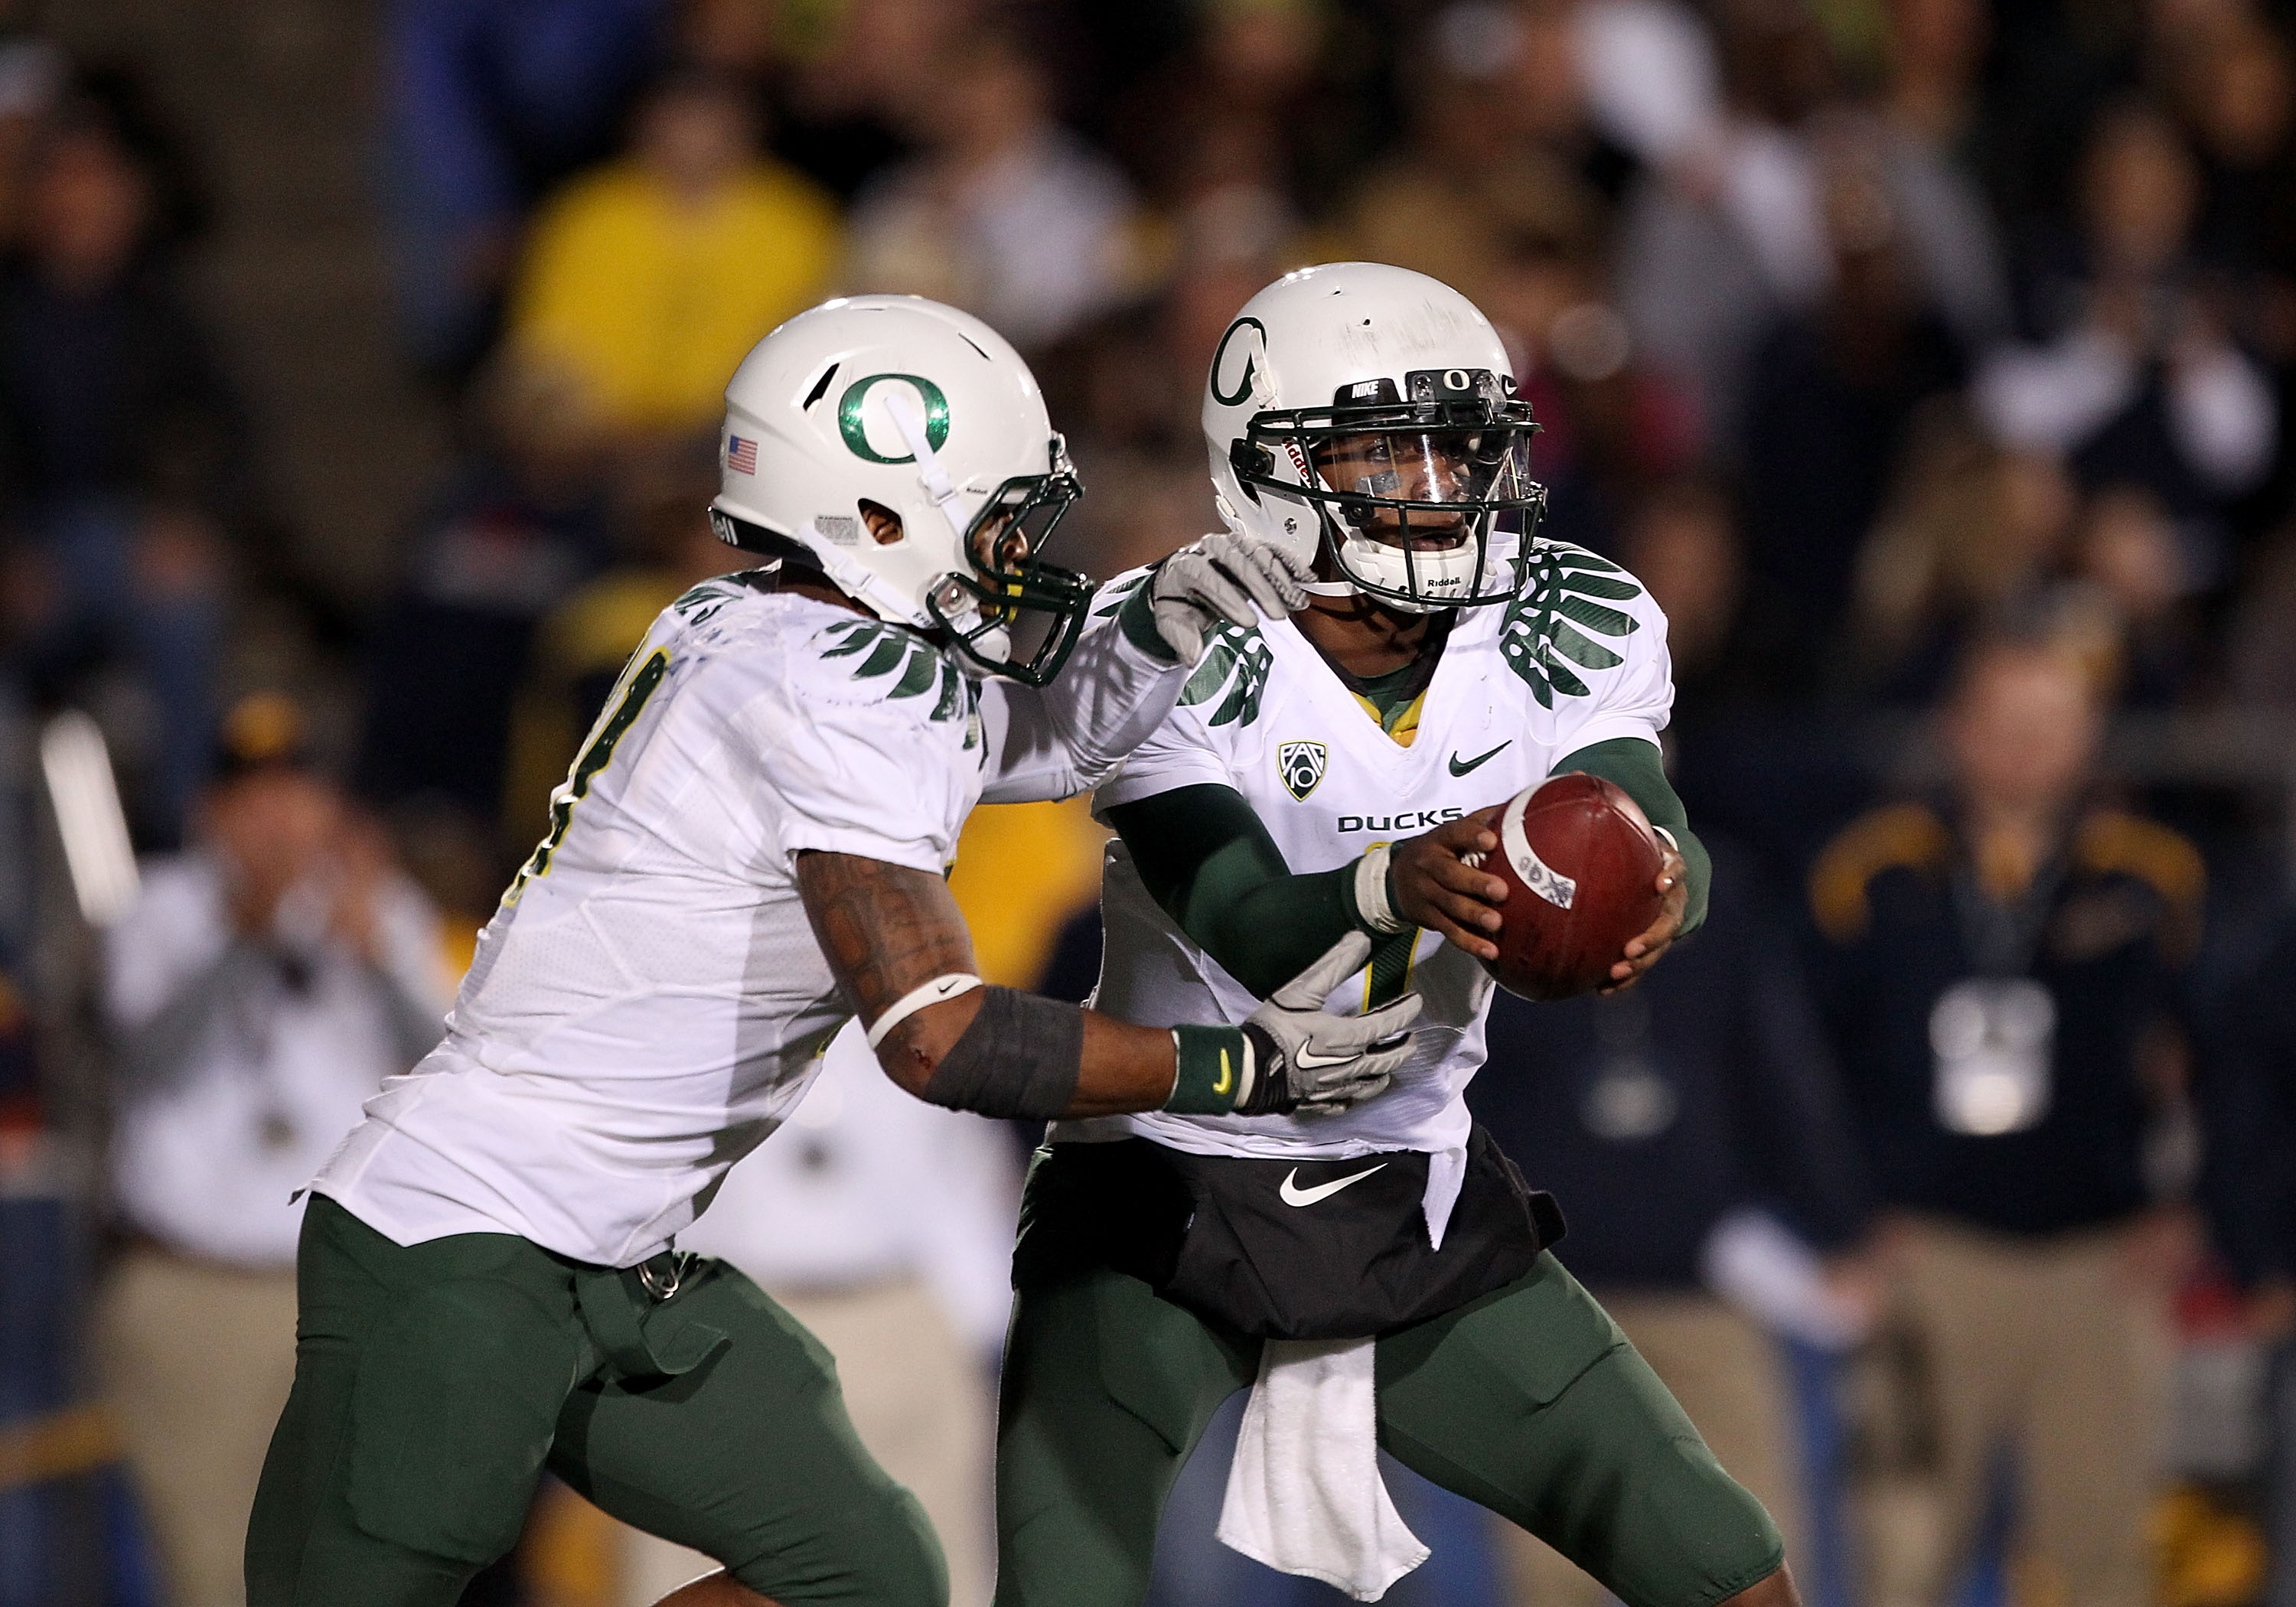 BERKELEY, CA - NOVEMBER 13:  Darron Thomas #1 of the Oregon Ducks hands off to LaMichael James #21 during their game against the California Golden Bears  at California Memorial Stadium on November 13, 2010 in Berkeley, California.  (Photo by Ezra Shaw/Get